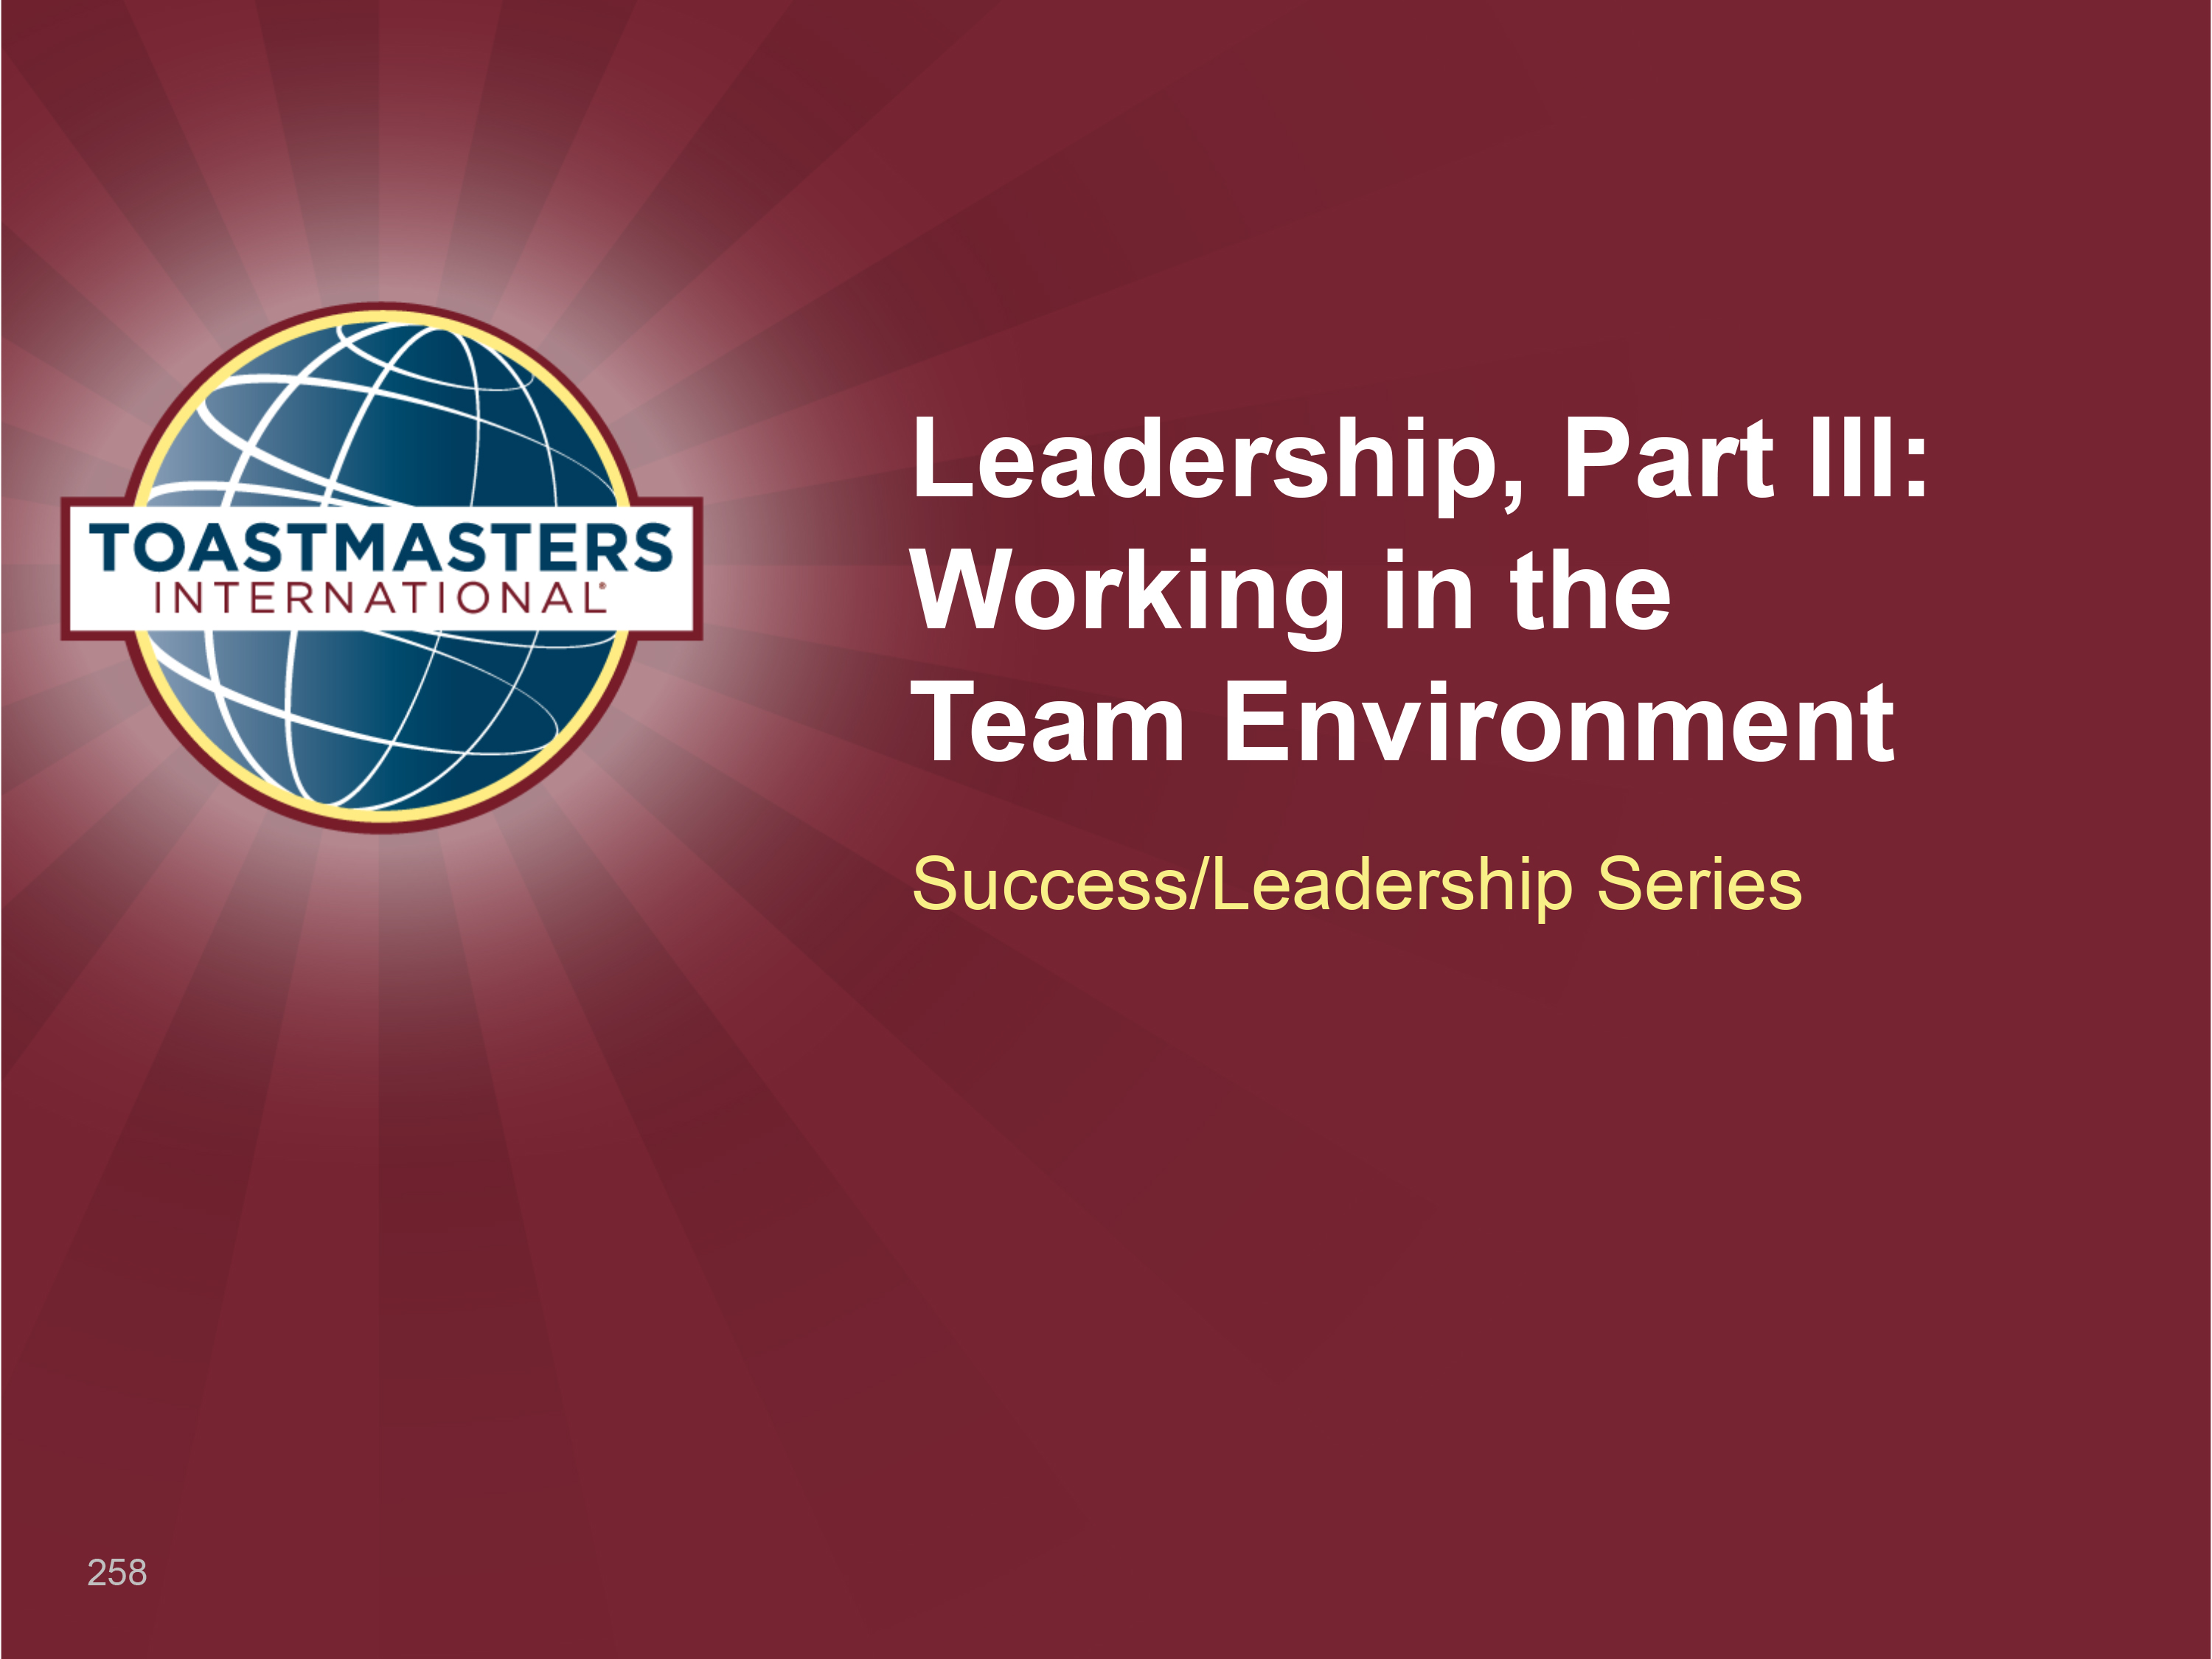 Leadership, Part III: Working in the Team Environment (PPT)